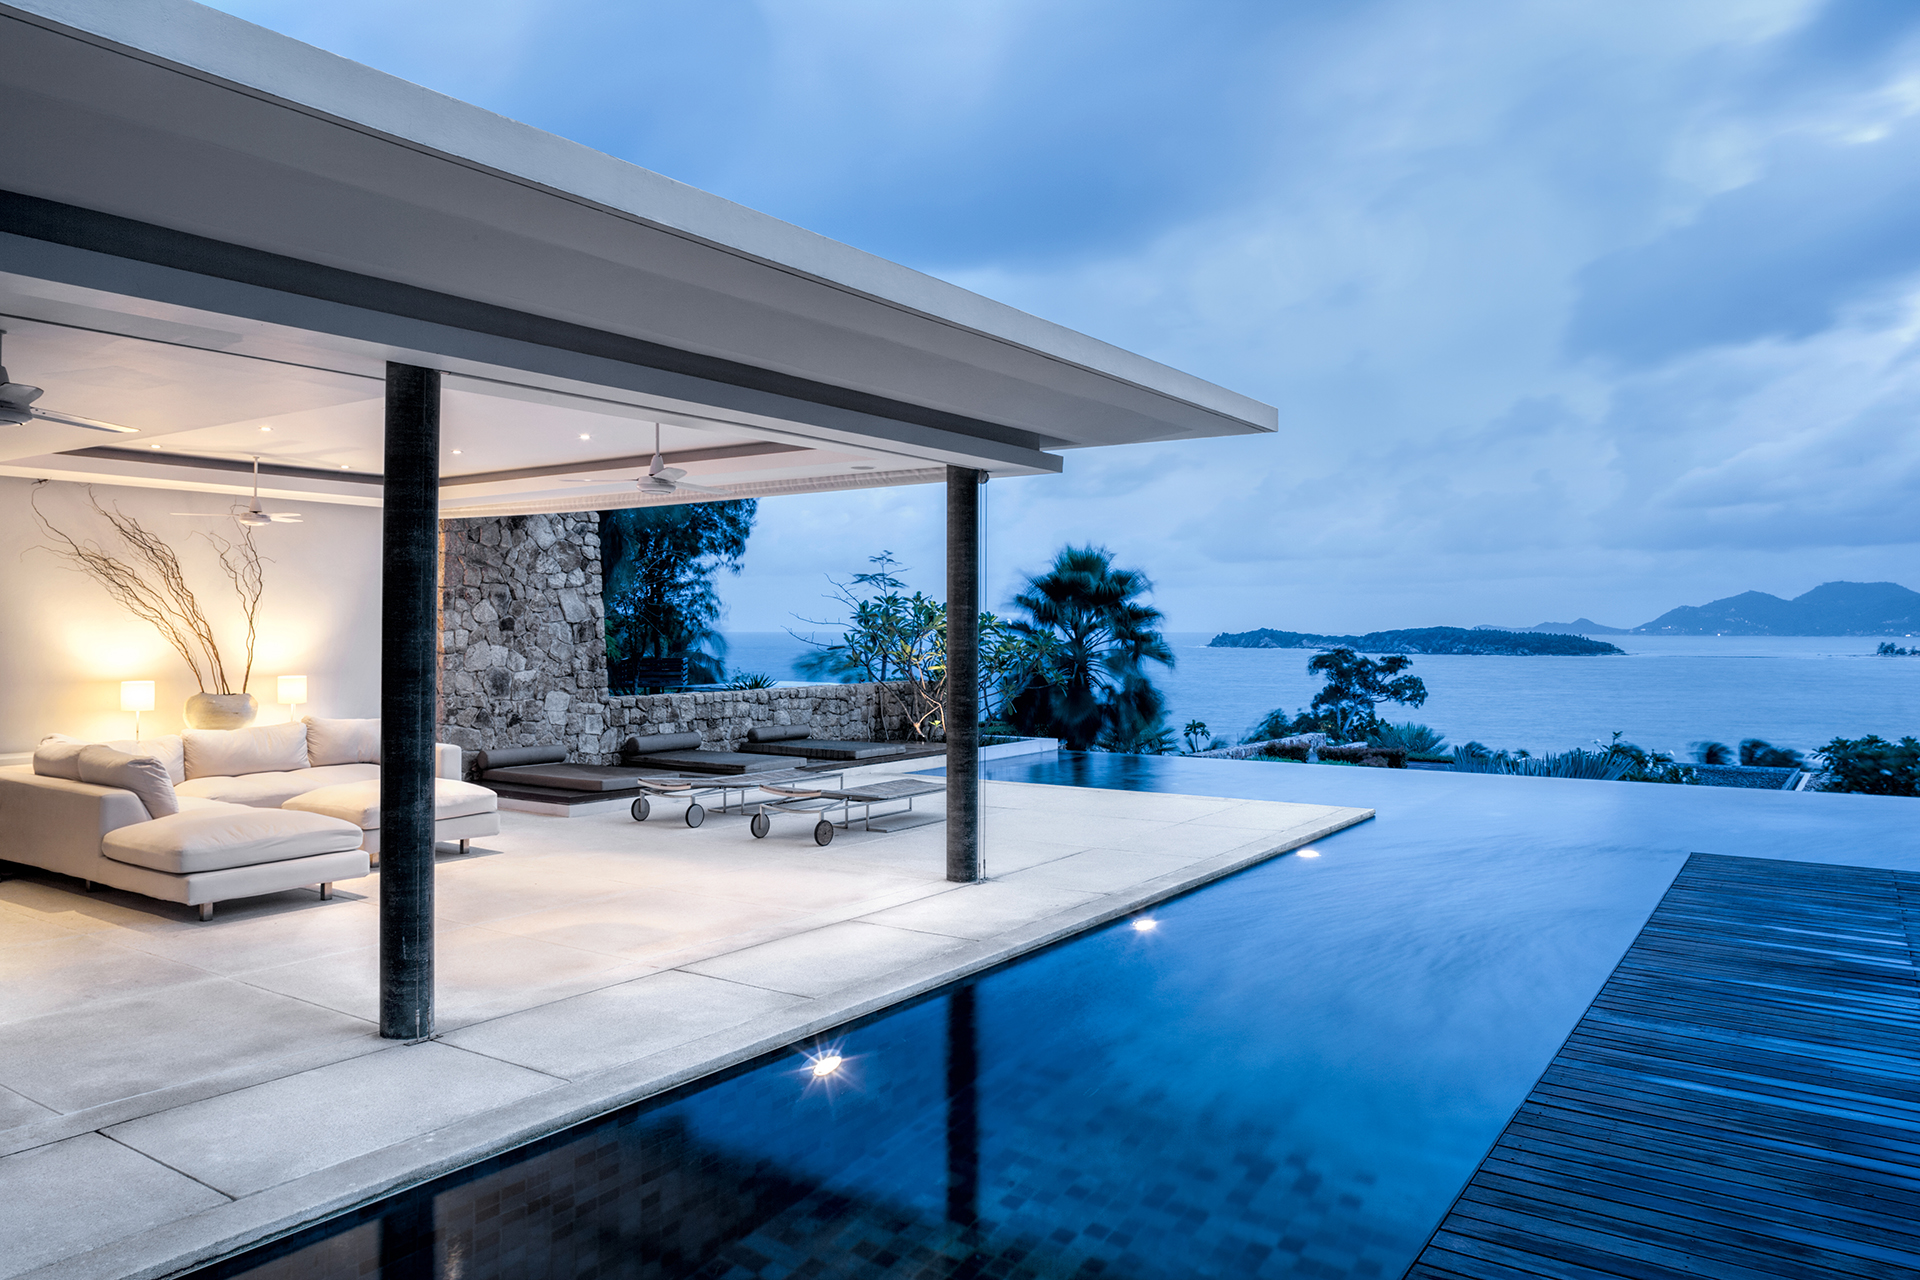 What Is An Infinity Pool Or Vanishing Edge Pool?